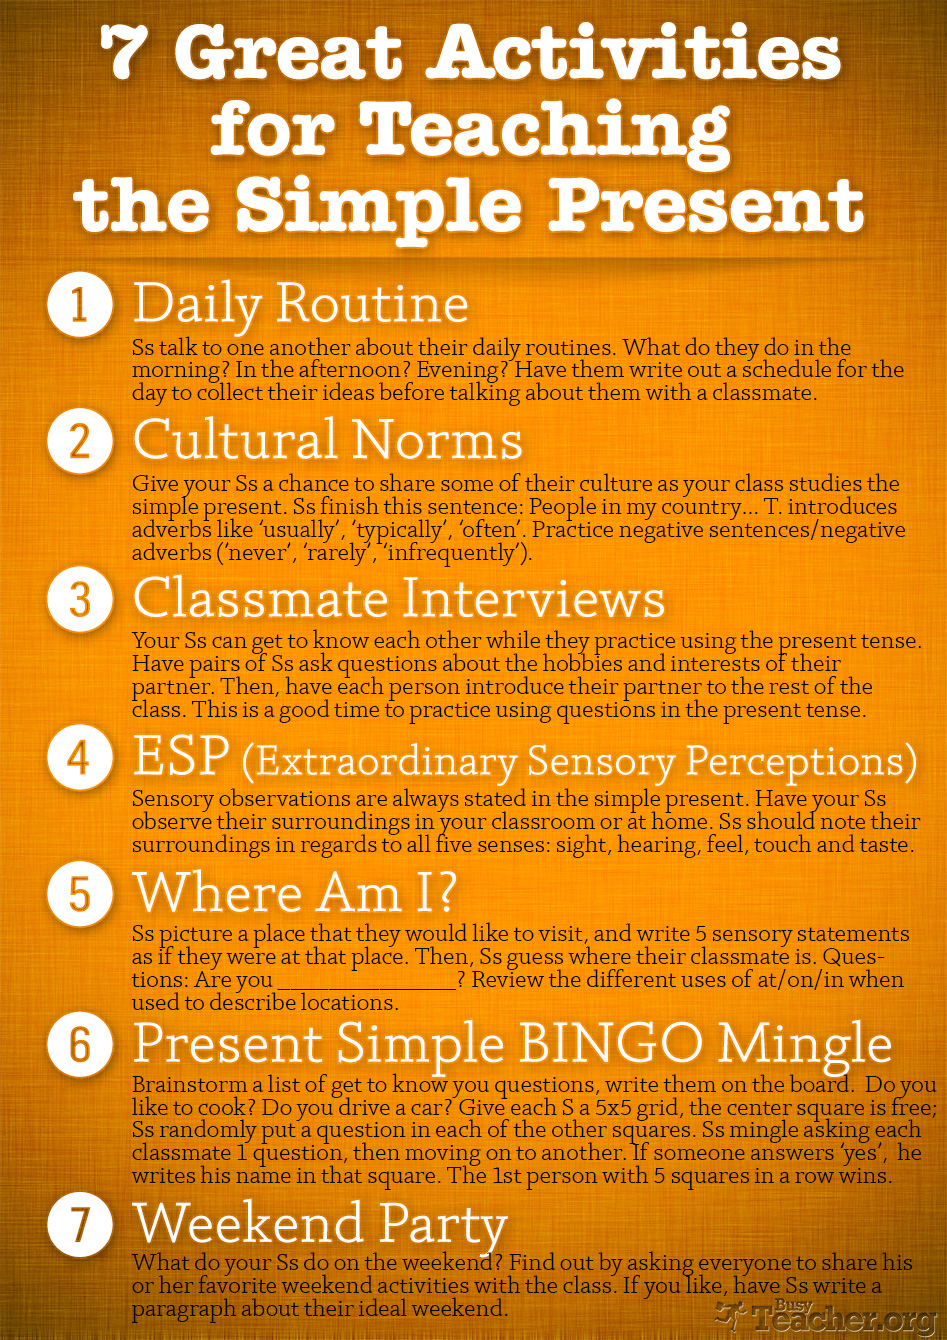 7 Great Activities to Teach the Simple Present: Poster